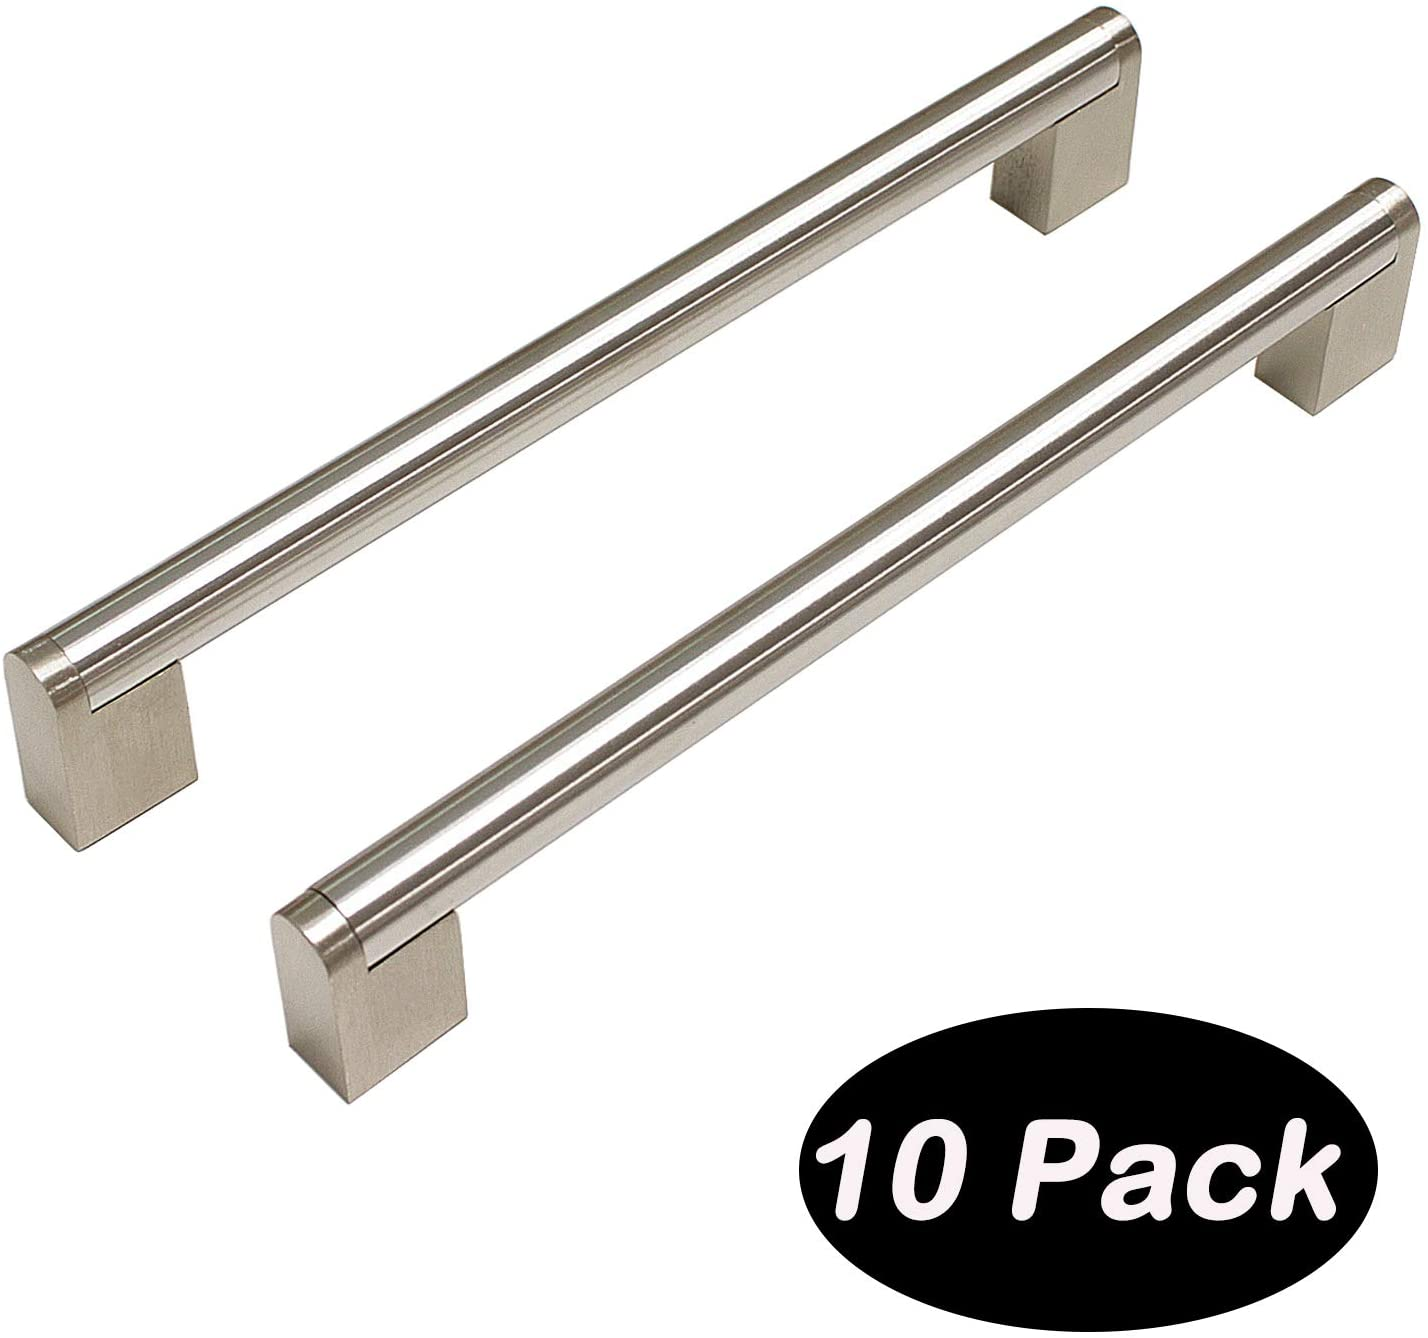 10 Pack 192mm(7-1/2inch) Hole Centers Diameter 14mm Stainless Steel Boss Bar Kitchen Cabinet Door Handles and Pulls Cabinet Knobs Length 229mm(9.16inch) Brushed Nickel